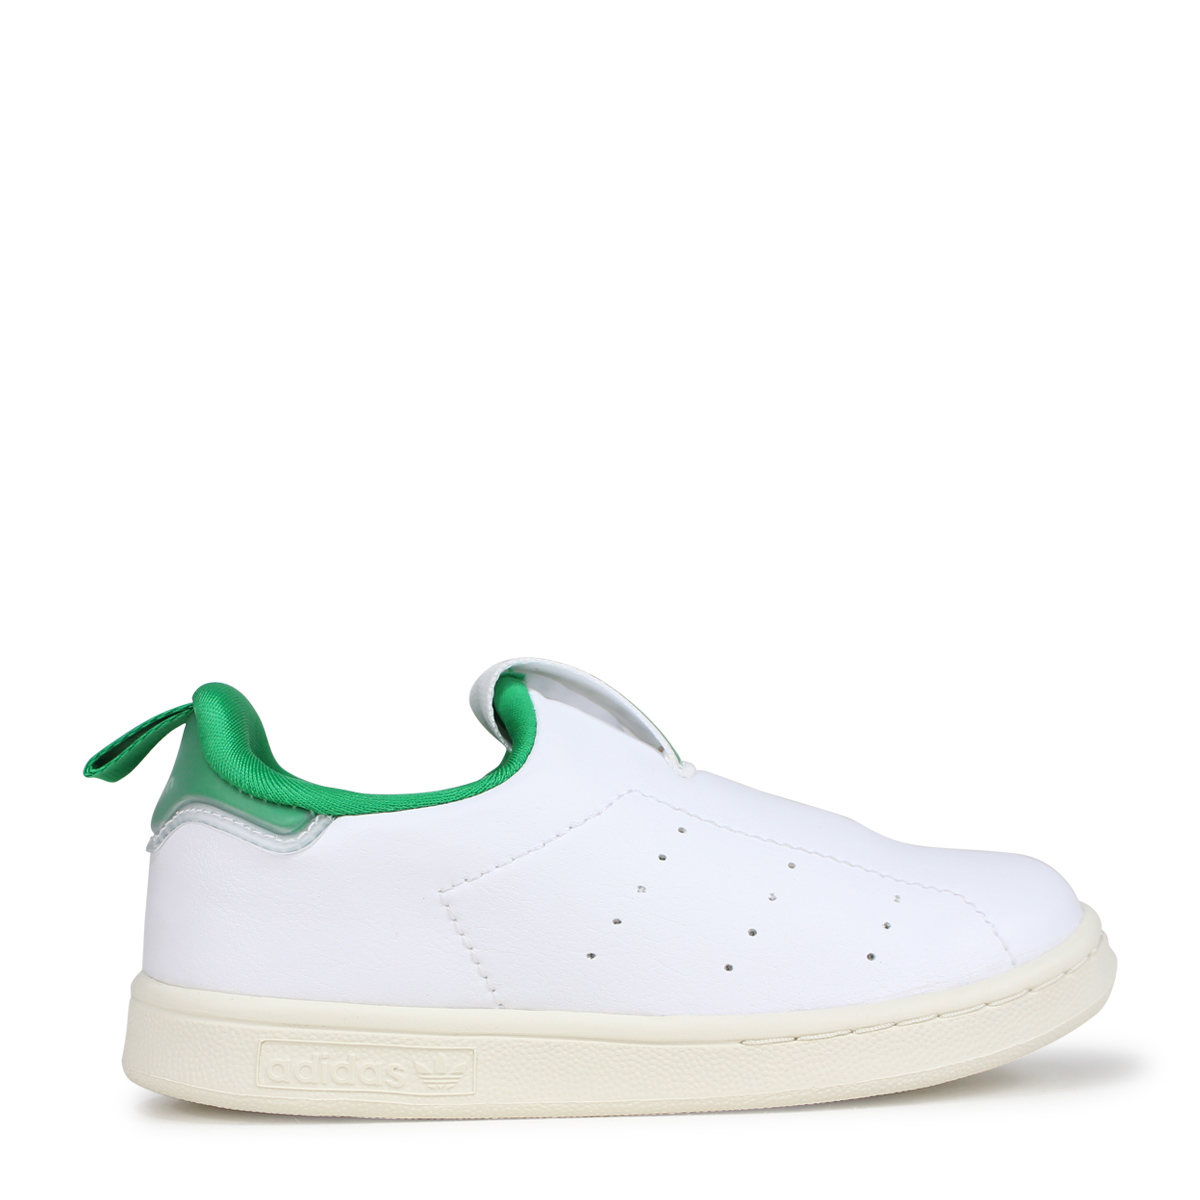 half off 311e8 bb111 adidas Originals STAN SMITH 360 I Adidas originals Stan Smith baby sneakers  AQ1112 white  load planned Shinnyu load in reservation product 10 12  containing  ...